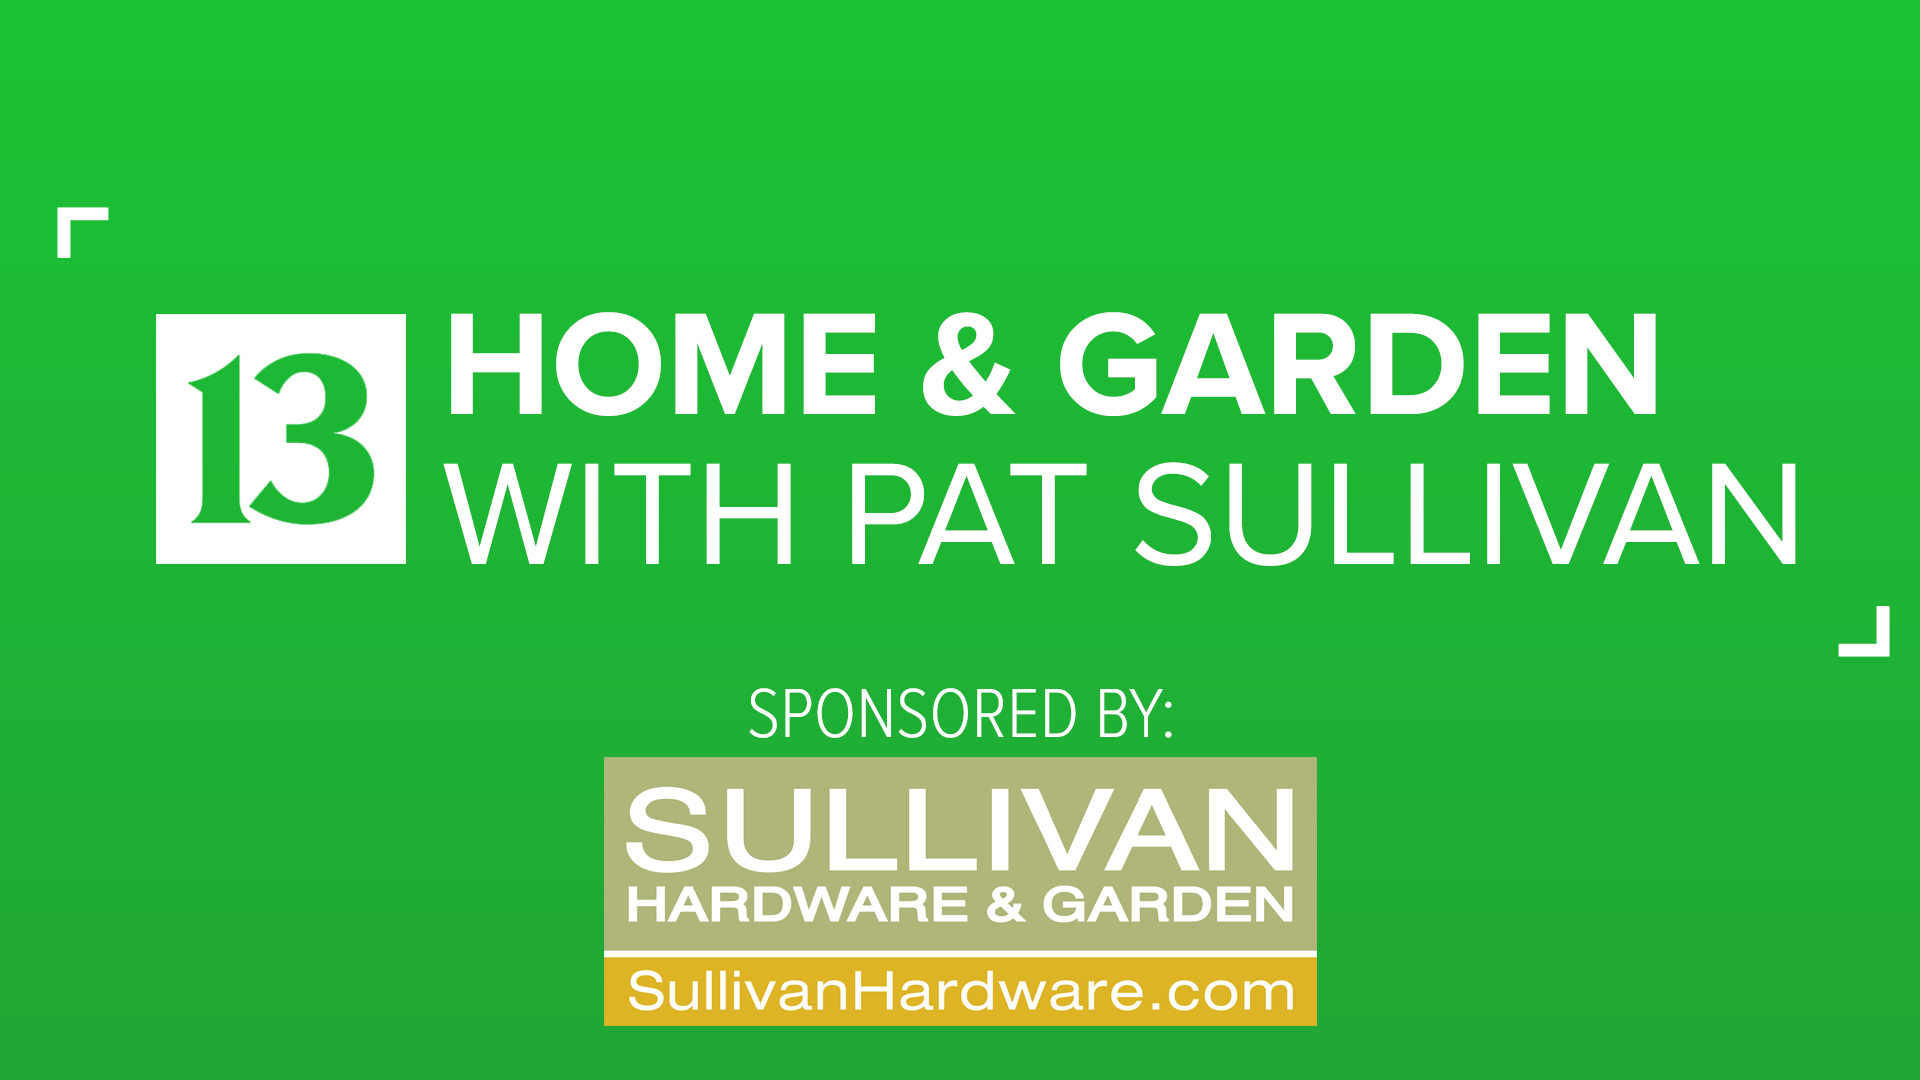 Home & Garden with Pat Sullivan